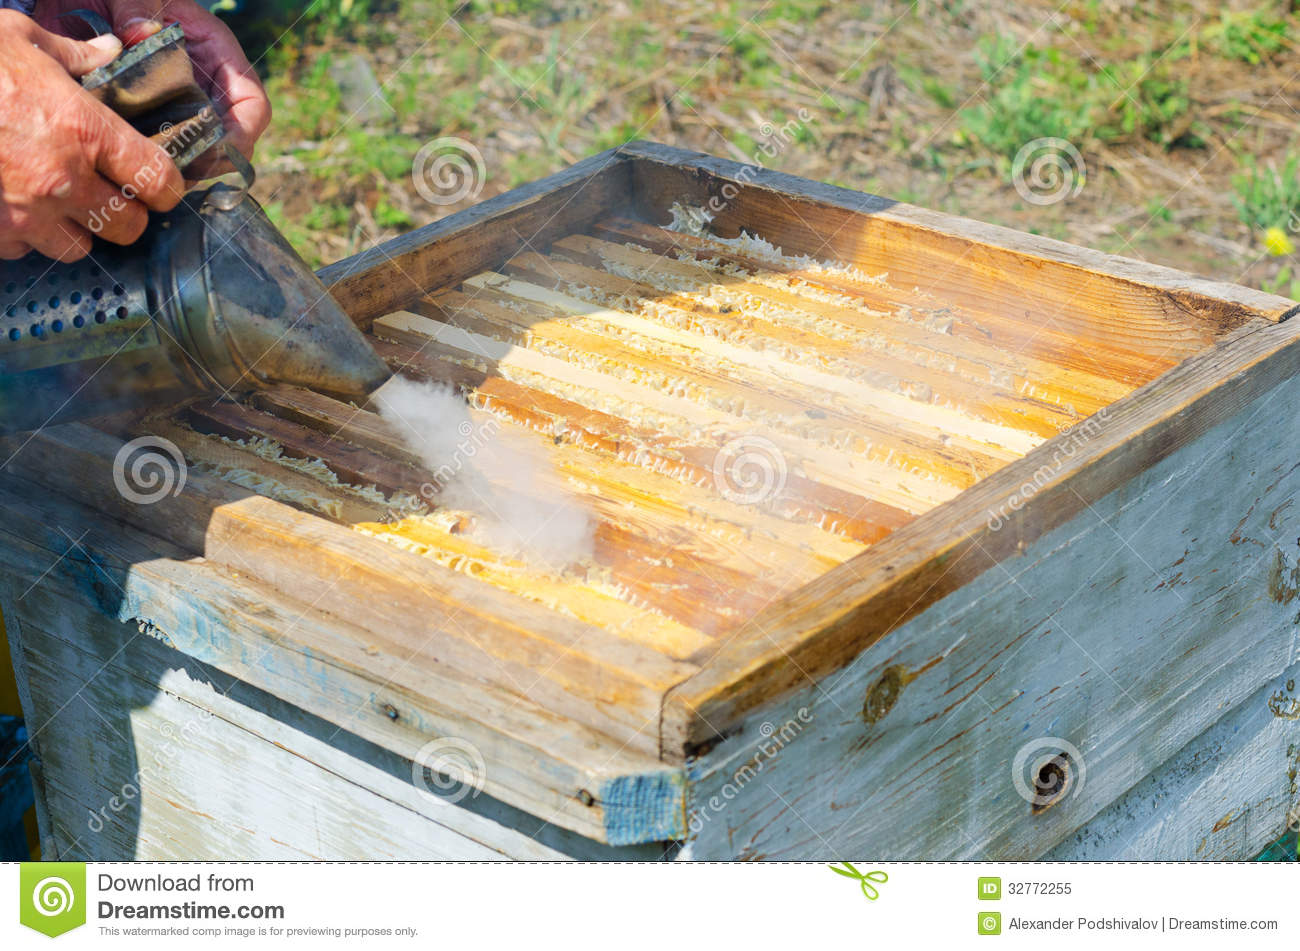 beekeeper work smokes beehive takes out honeycomb frames 32772255